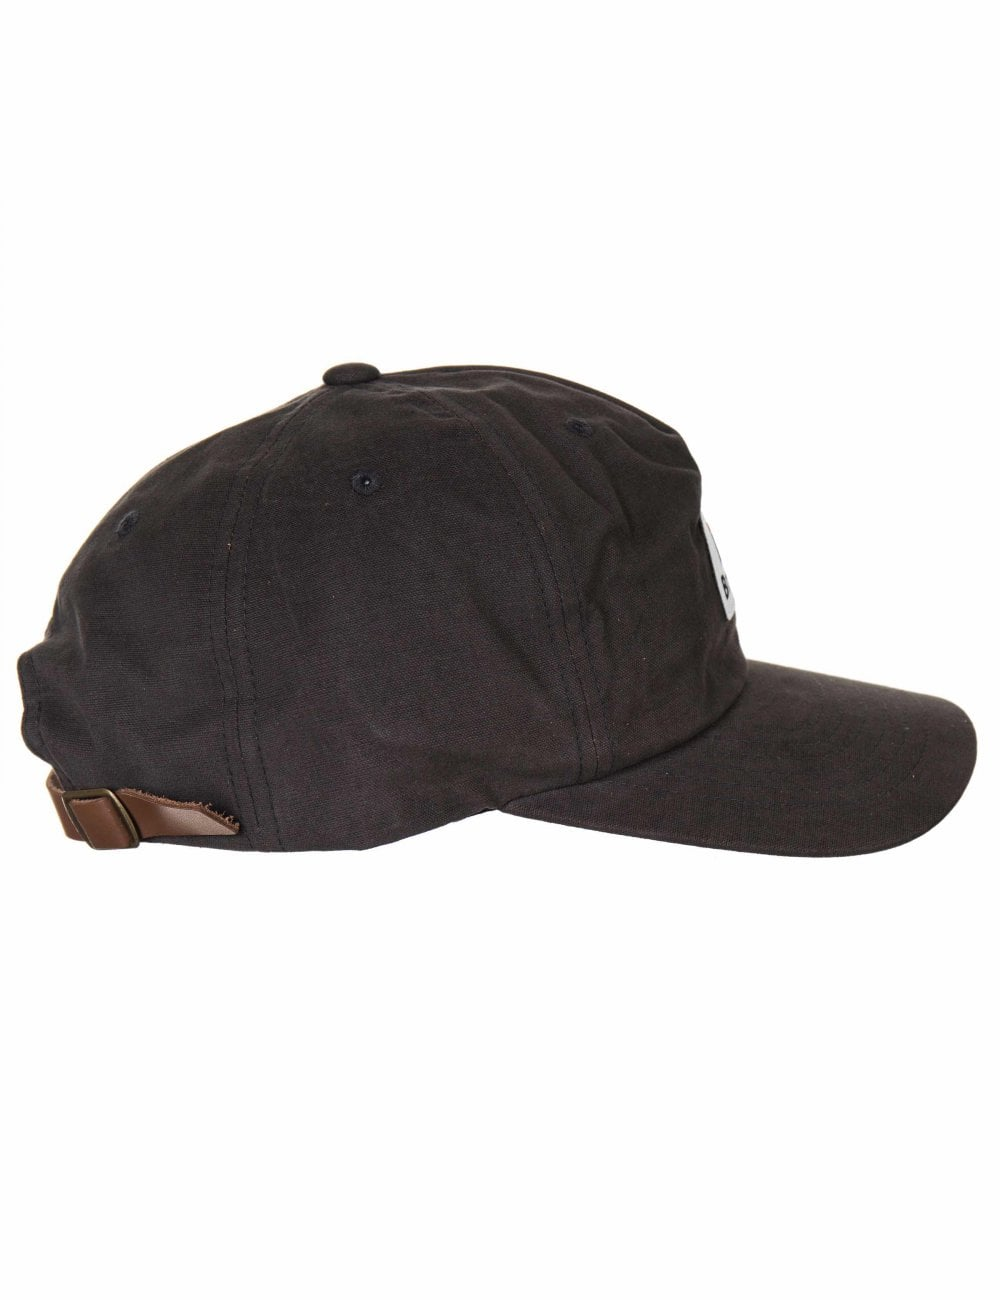 361334d98ea Brixton Stowell MP Cap - Graphite - Accessories from Fat Buddha Store UK